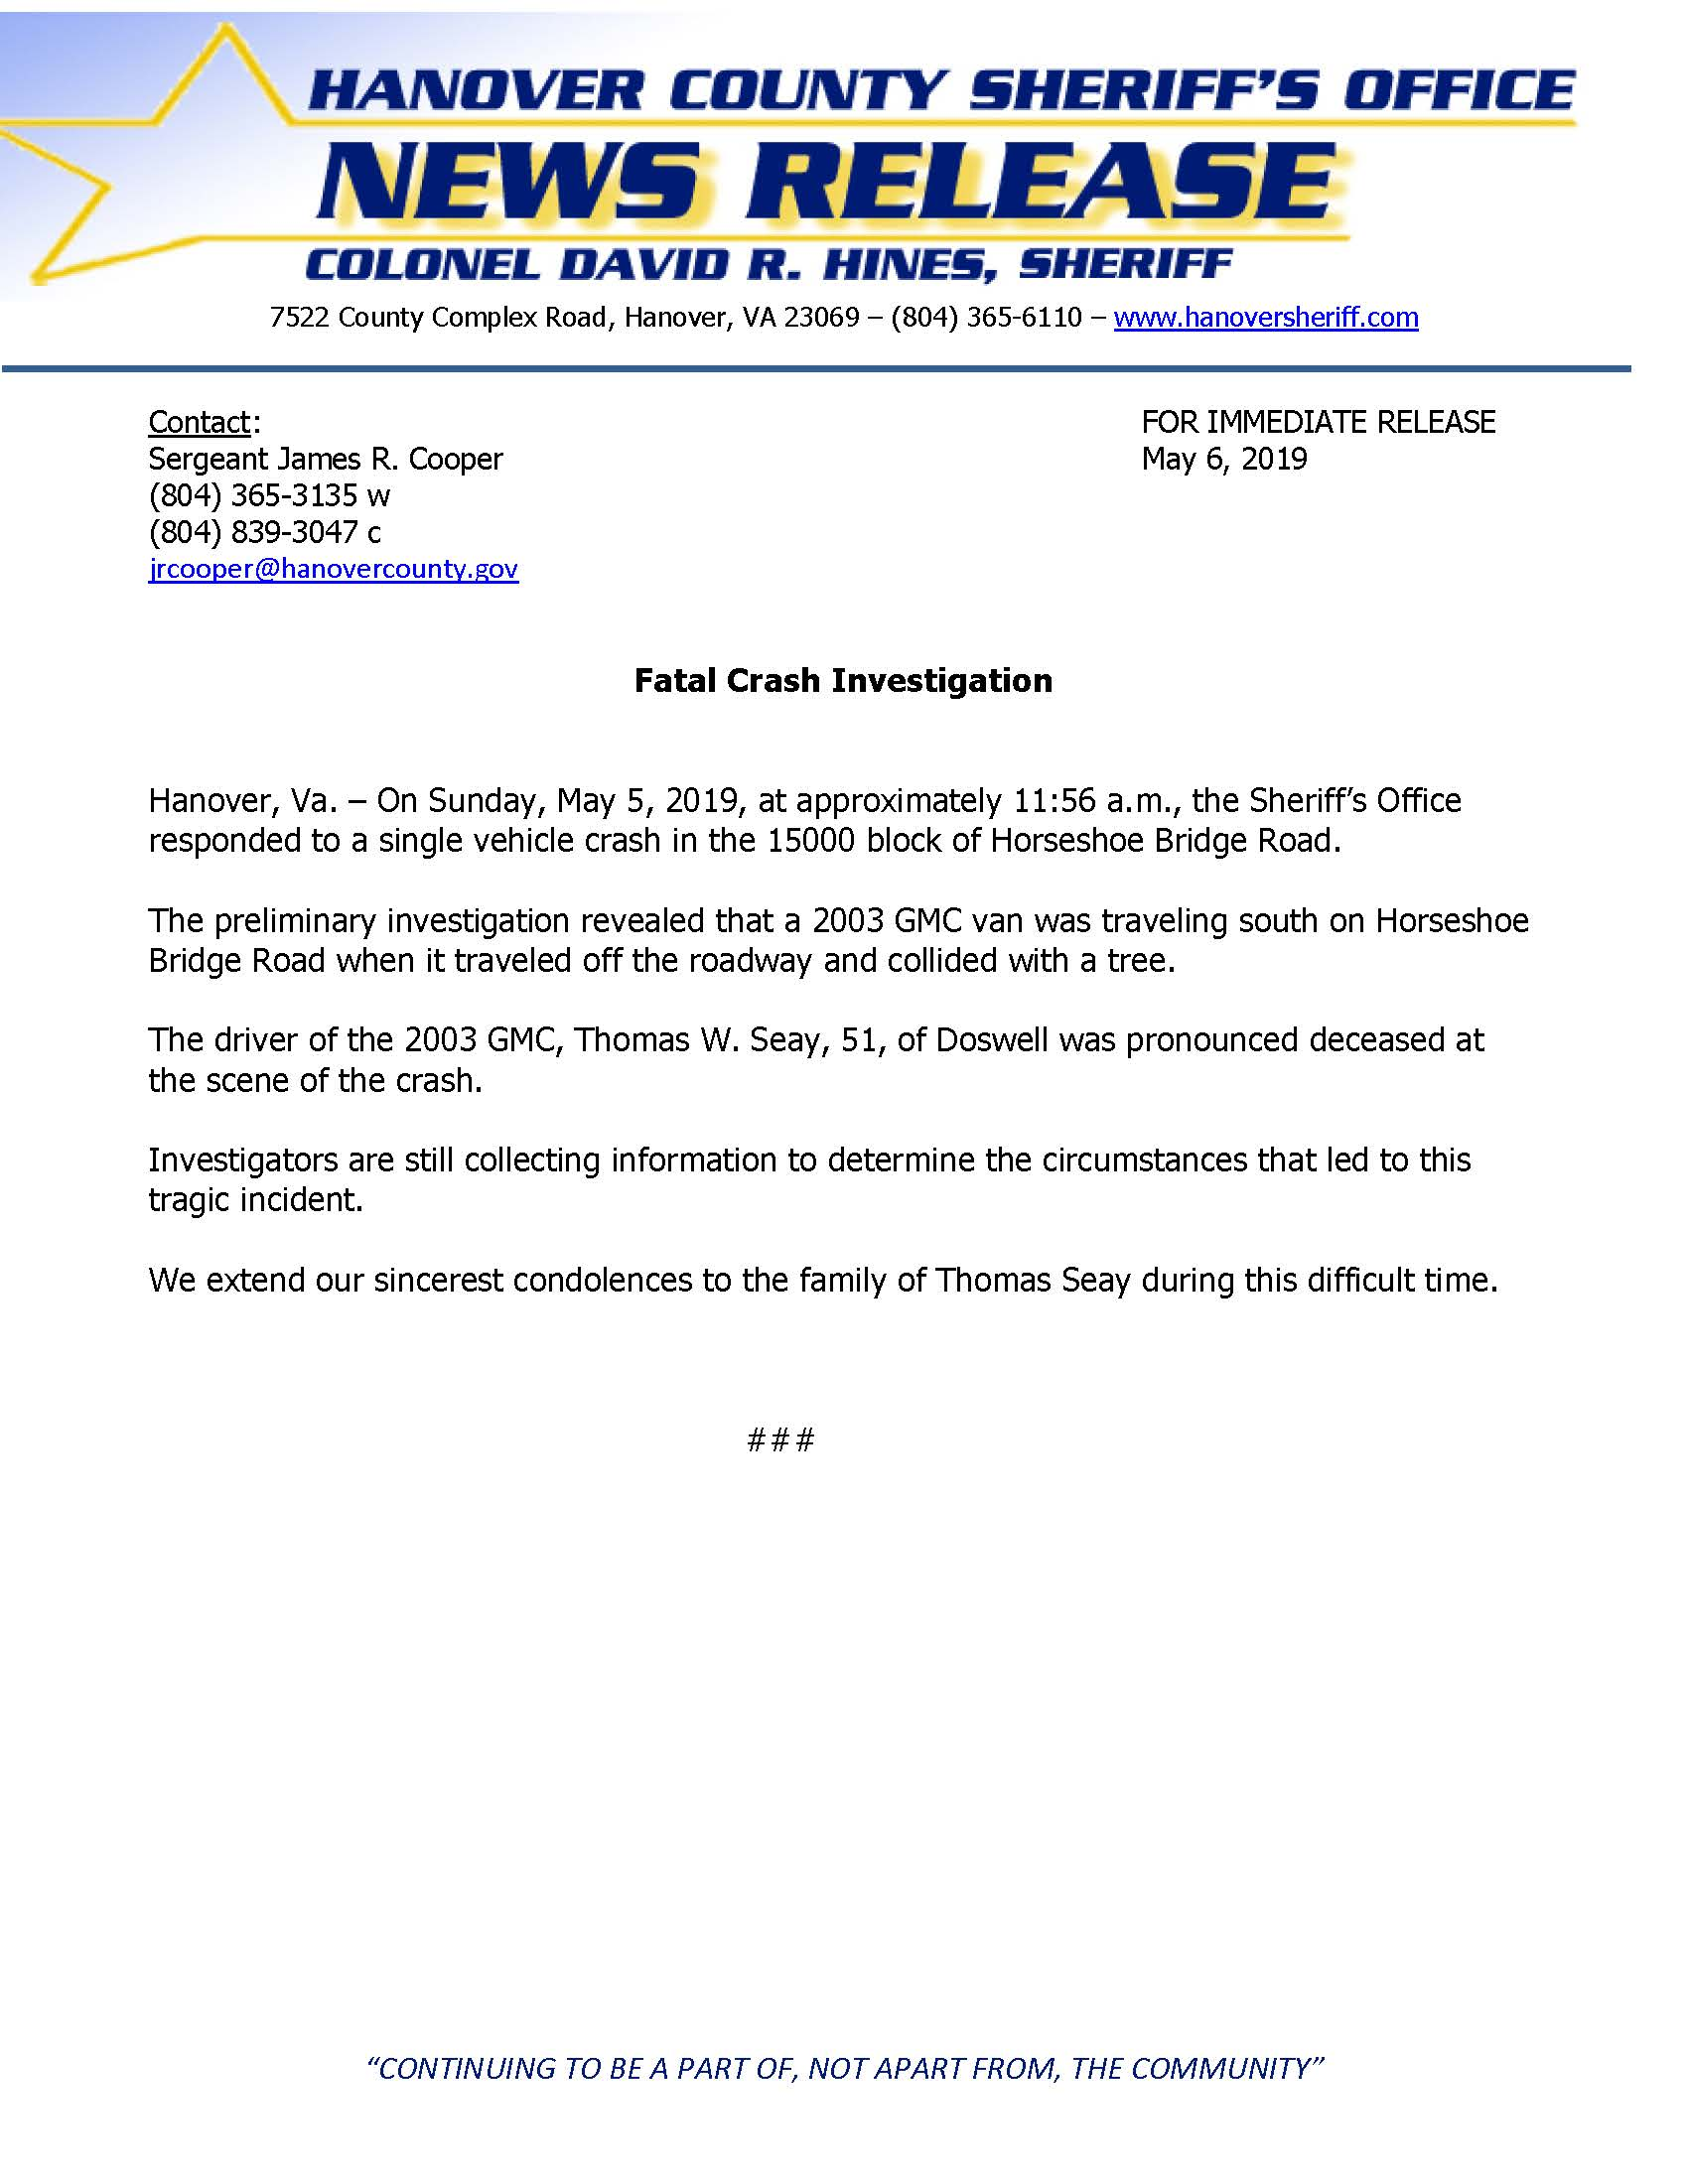 HCSO - Fatal Crash - Horseshoe Bridge Road- May 6, 2019